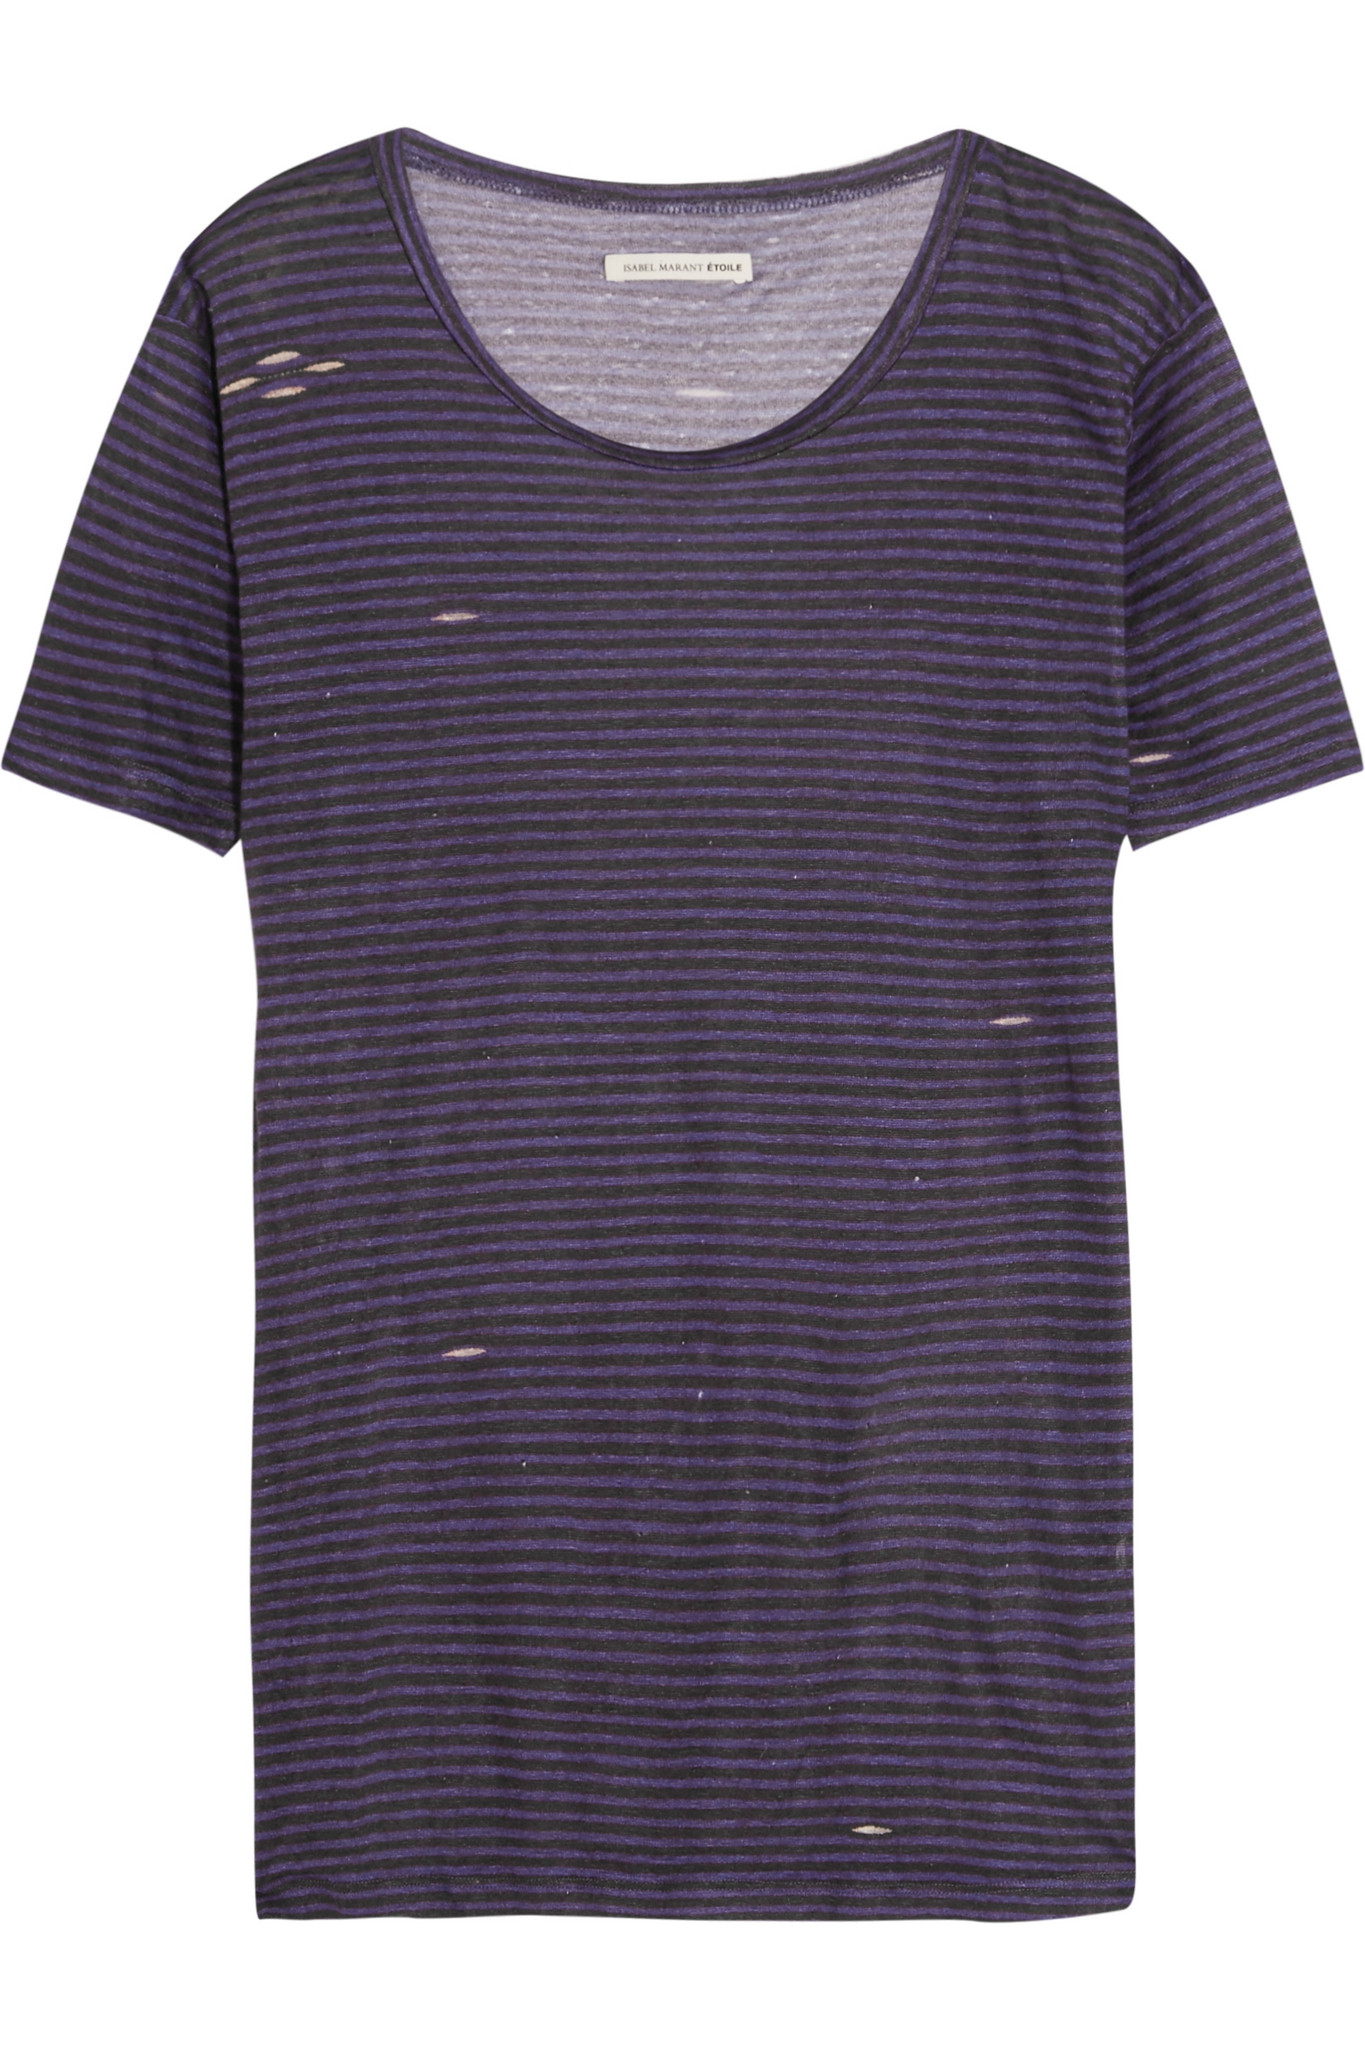 Lyst toile isabel marant jina striped stretch linen t for Purple and black striped t shirt